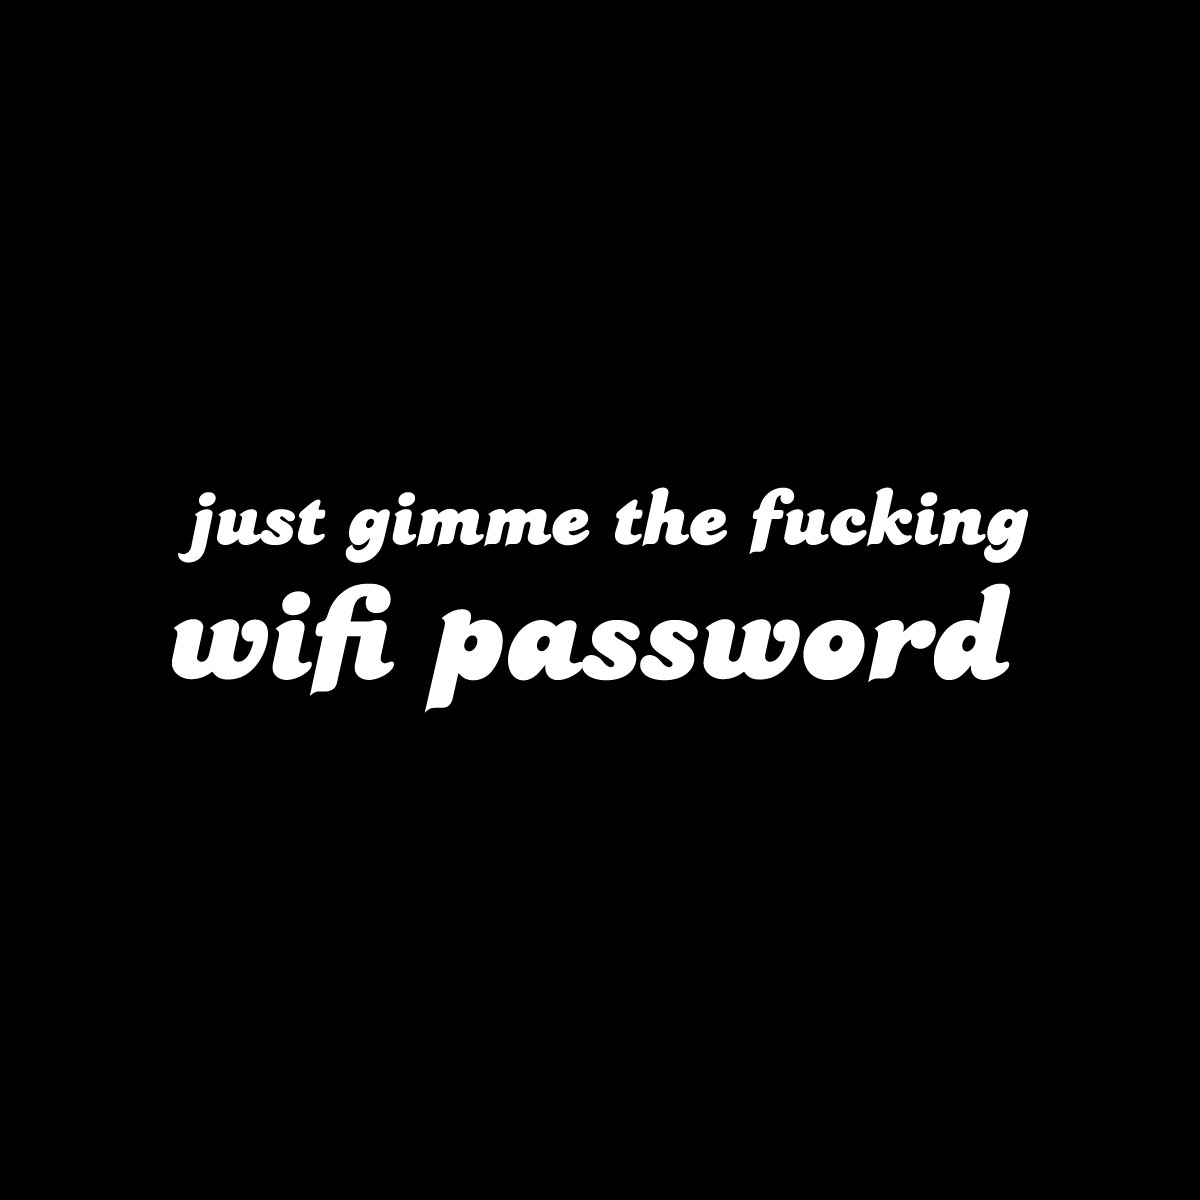 funny wifi passwords shirts for millennials by kikicutt